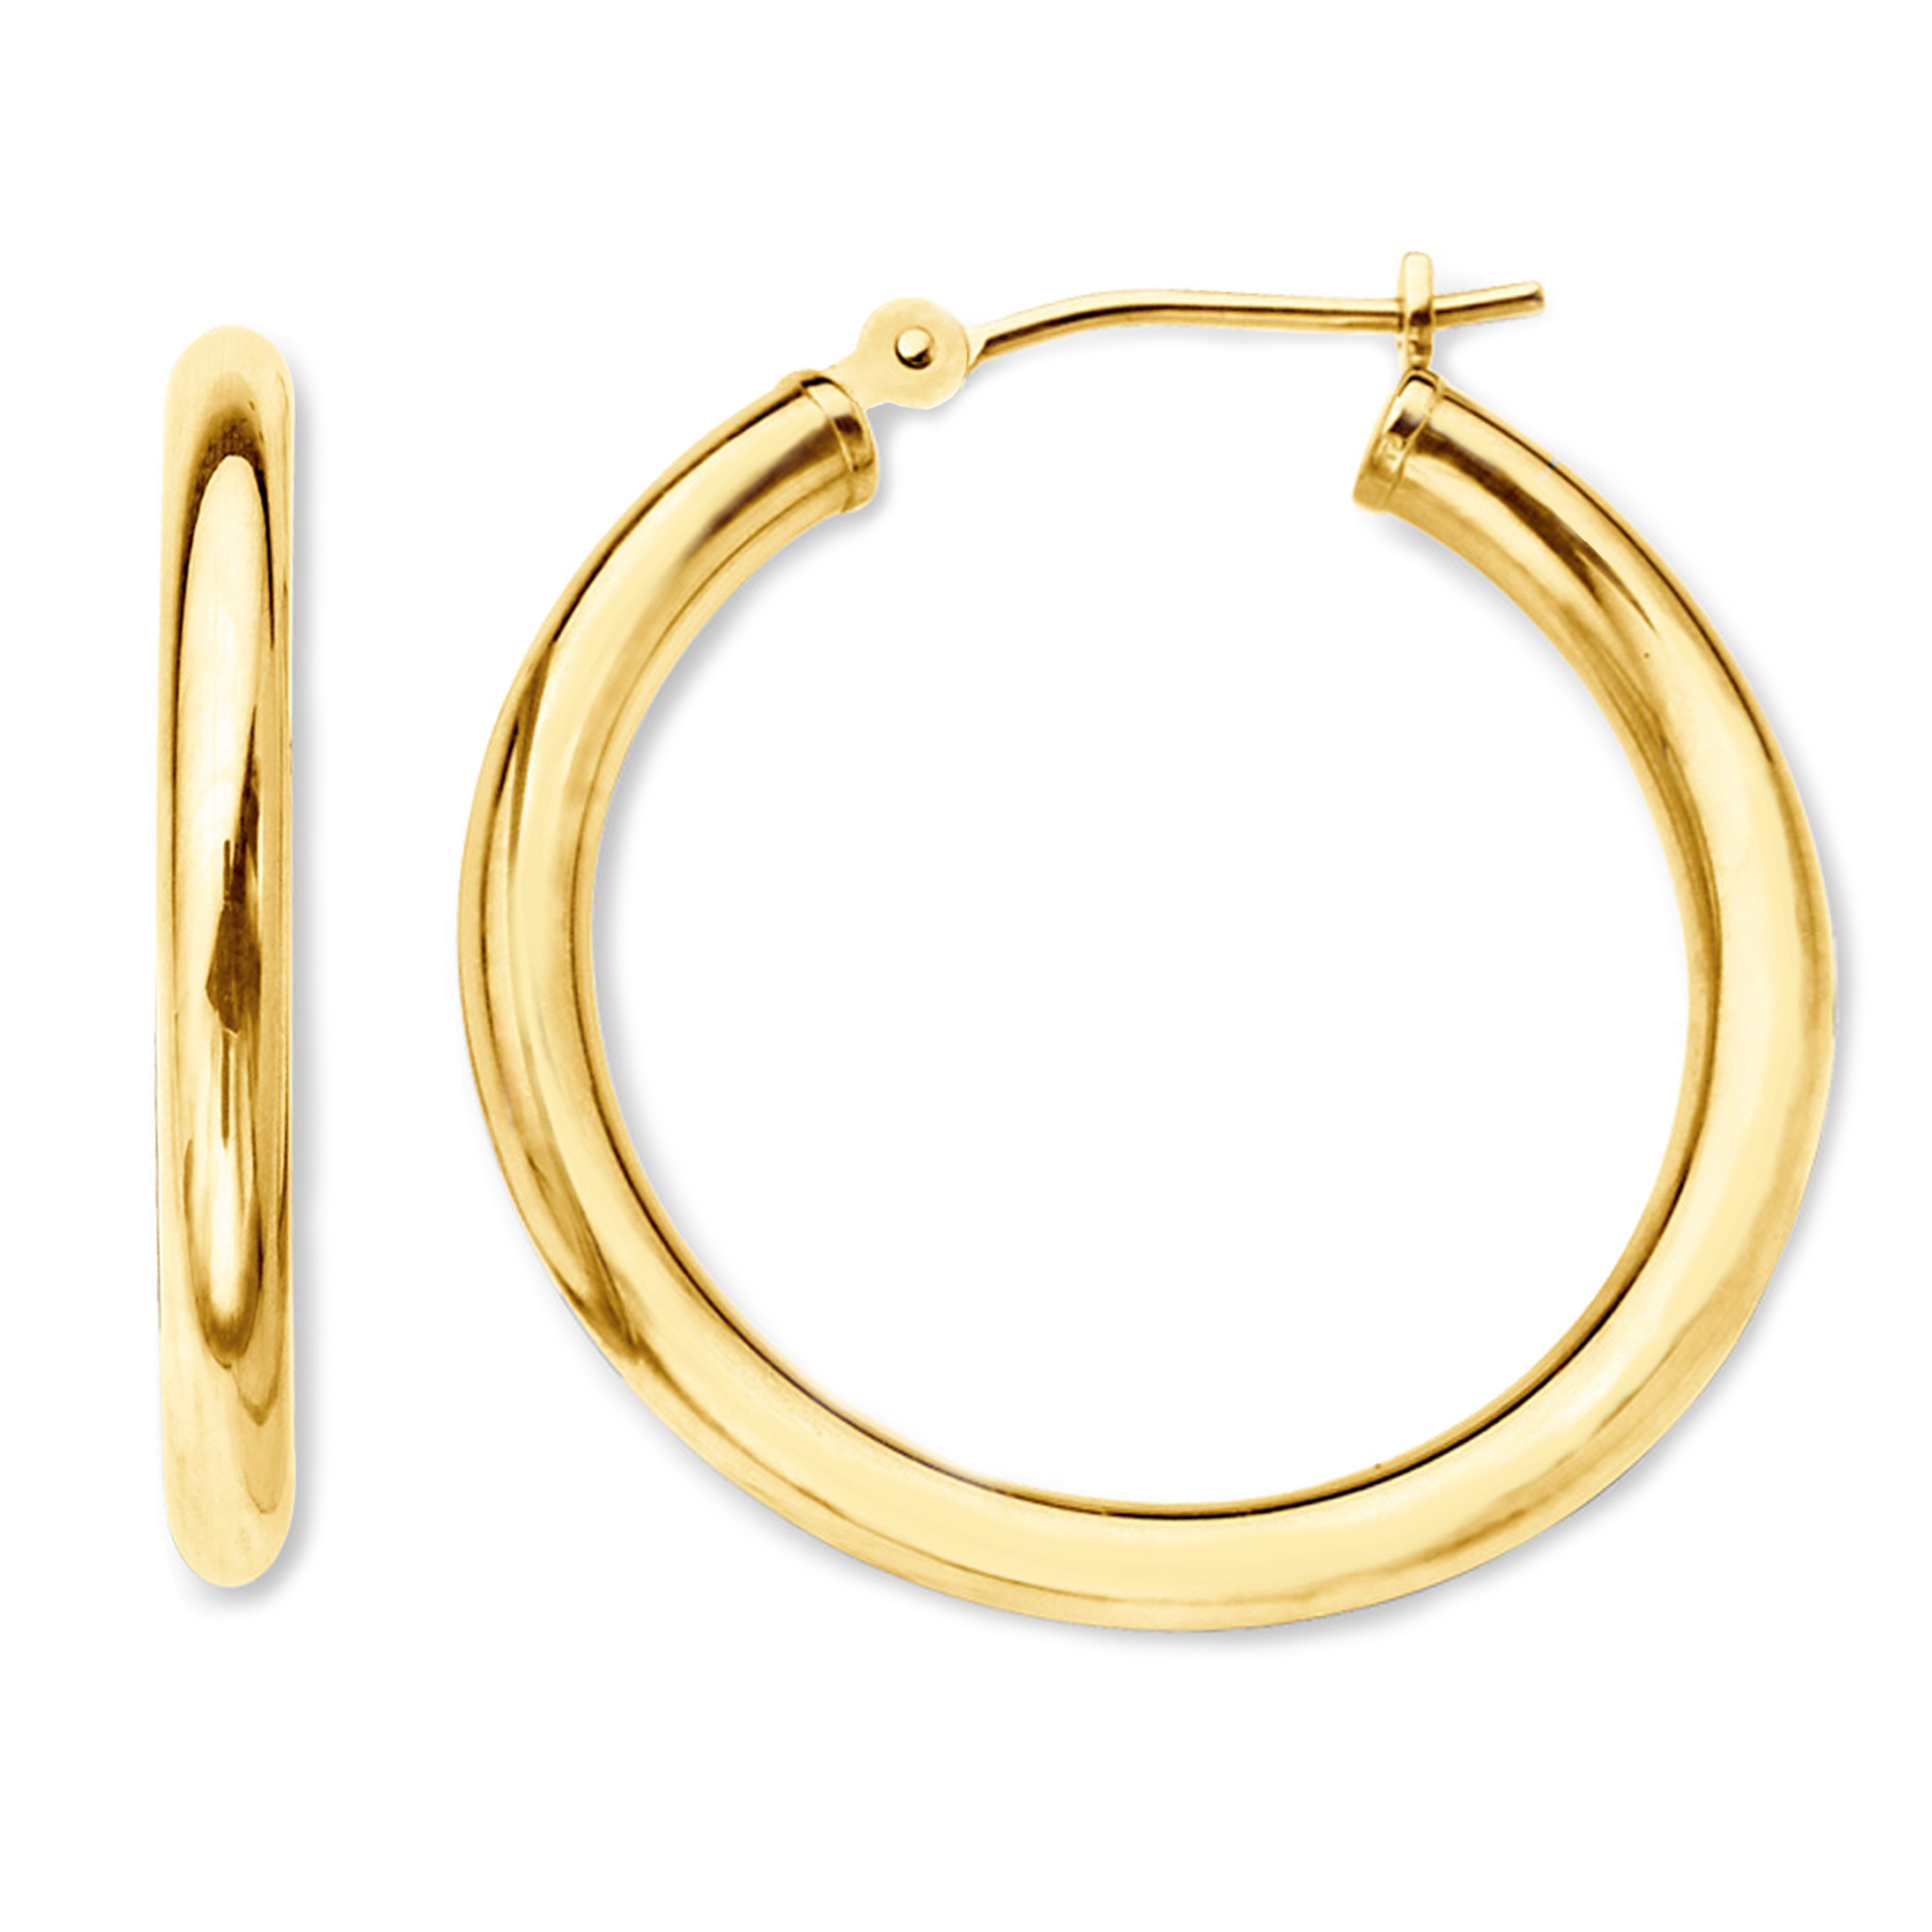 10k Yellow Gold 2mm Shiny Round Tube Hoop Earrings, Diameter 50mm Complete your jewelry collection with a gorgeous pair of 10k gold hoop earrings. Whether you prefer large bohemian look or tiny orbs, you'll discover plenty of sizes to match your style. These earrings have a secure snap post clasp making them easy to wear and remove.